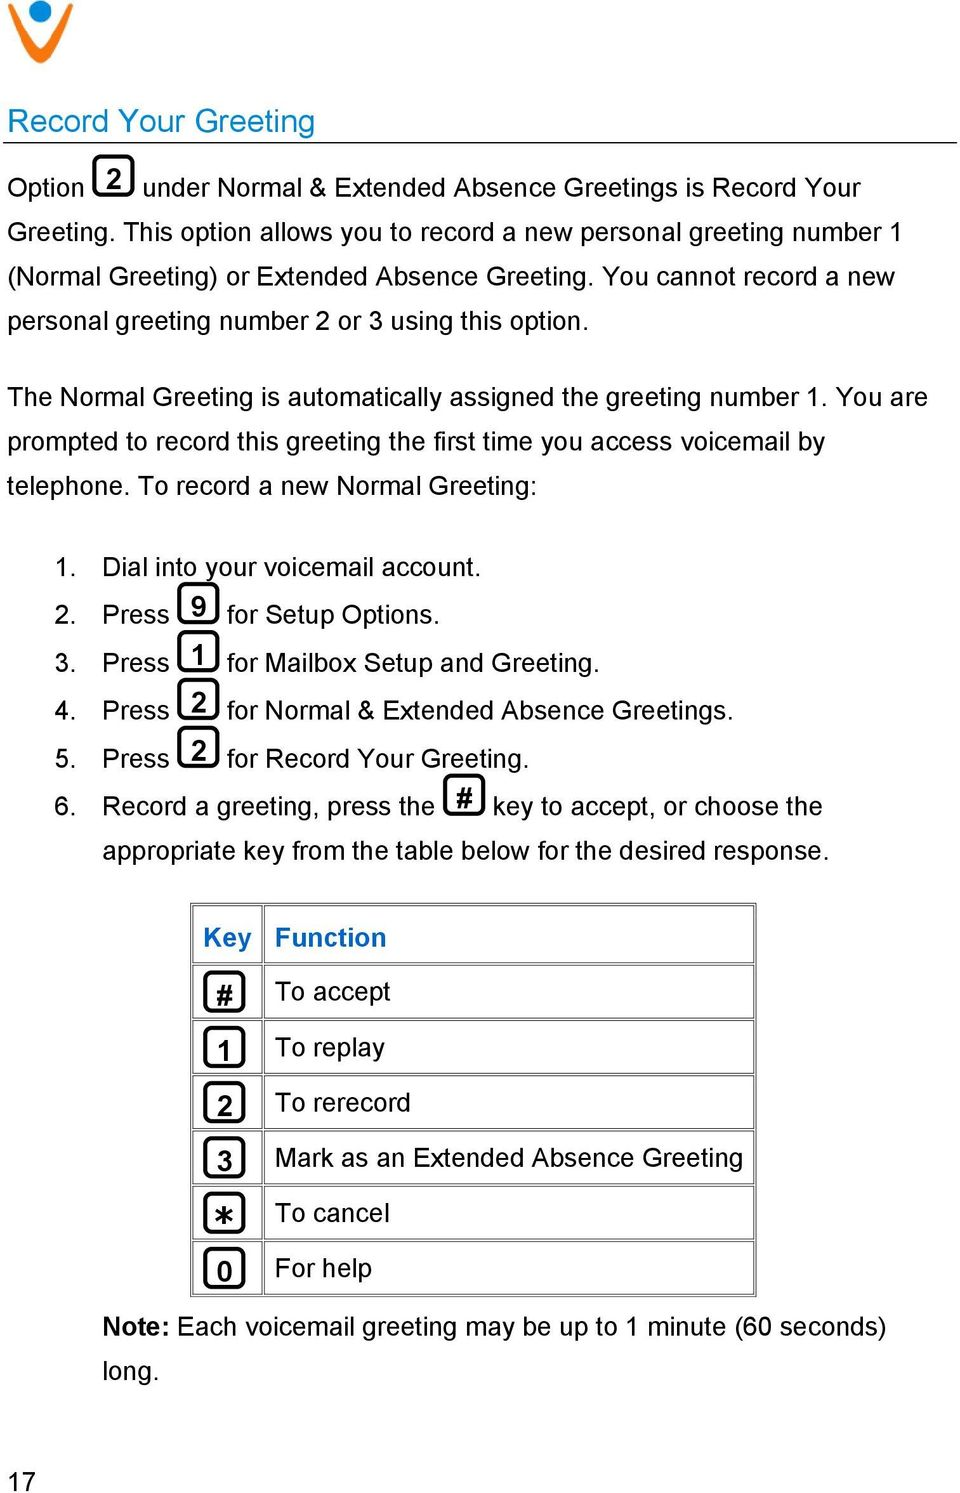 The Normal Greeting is automatically assigned the greeting number 1. You are prompted to record this greeting the first time you access voicemail by telephone. To record a new Normal Greeting: 1.